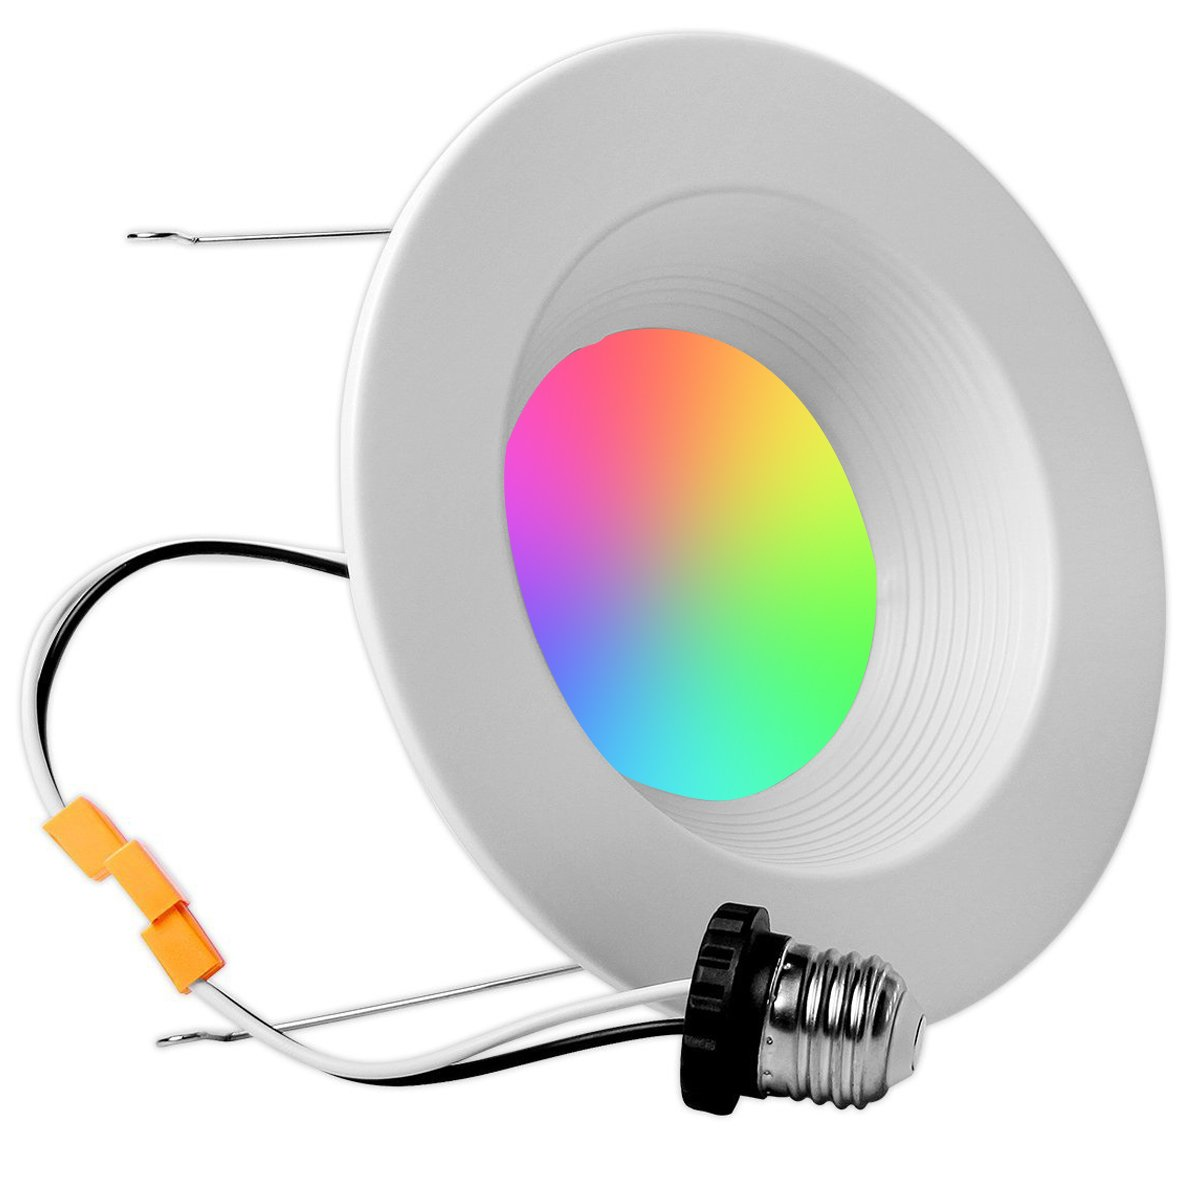 iLintek Smart LED Downlight, 13W 6inch Decorative lights, Dimmable, Multicolred